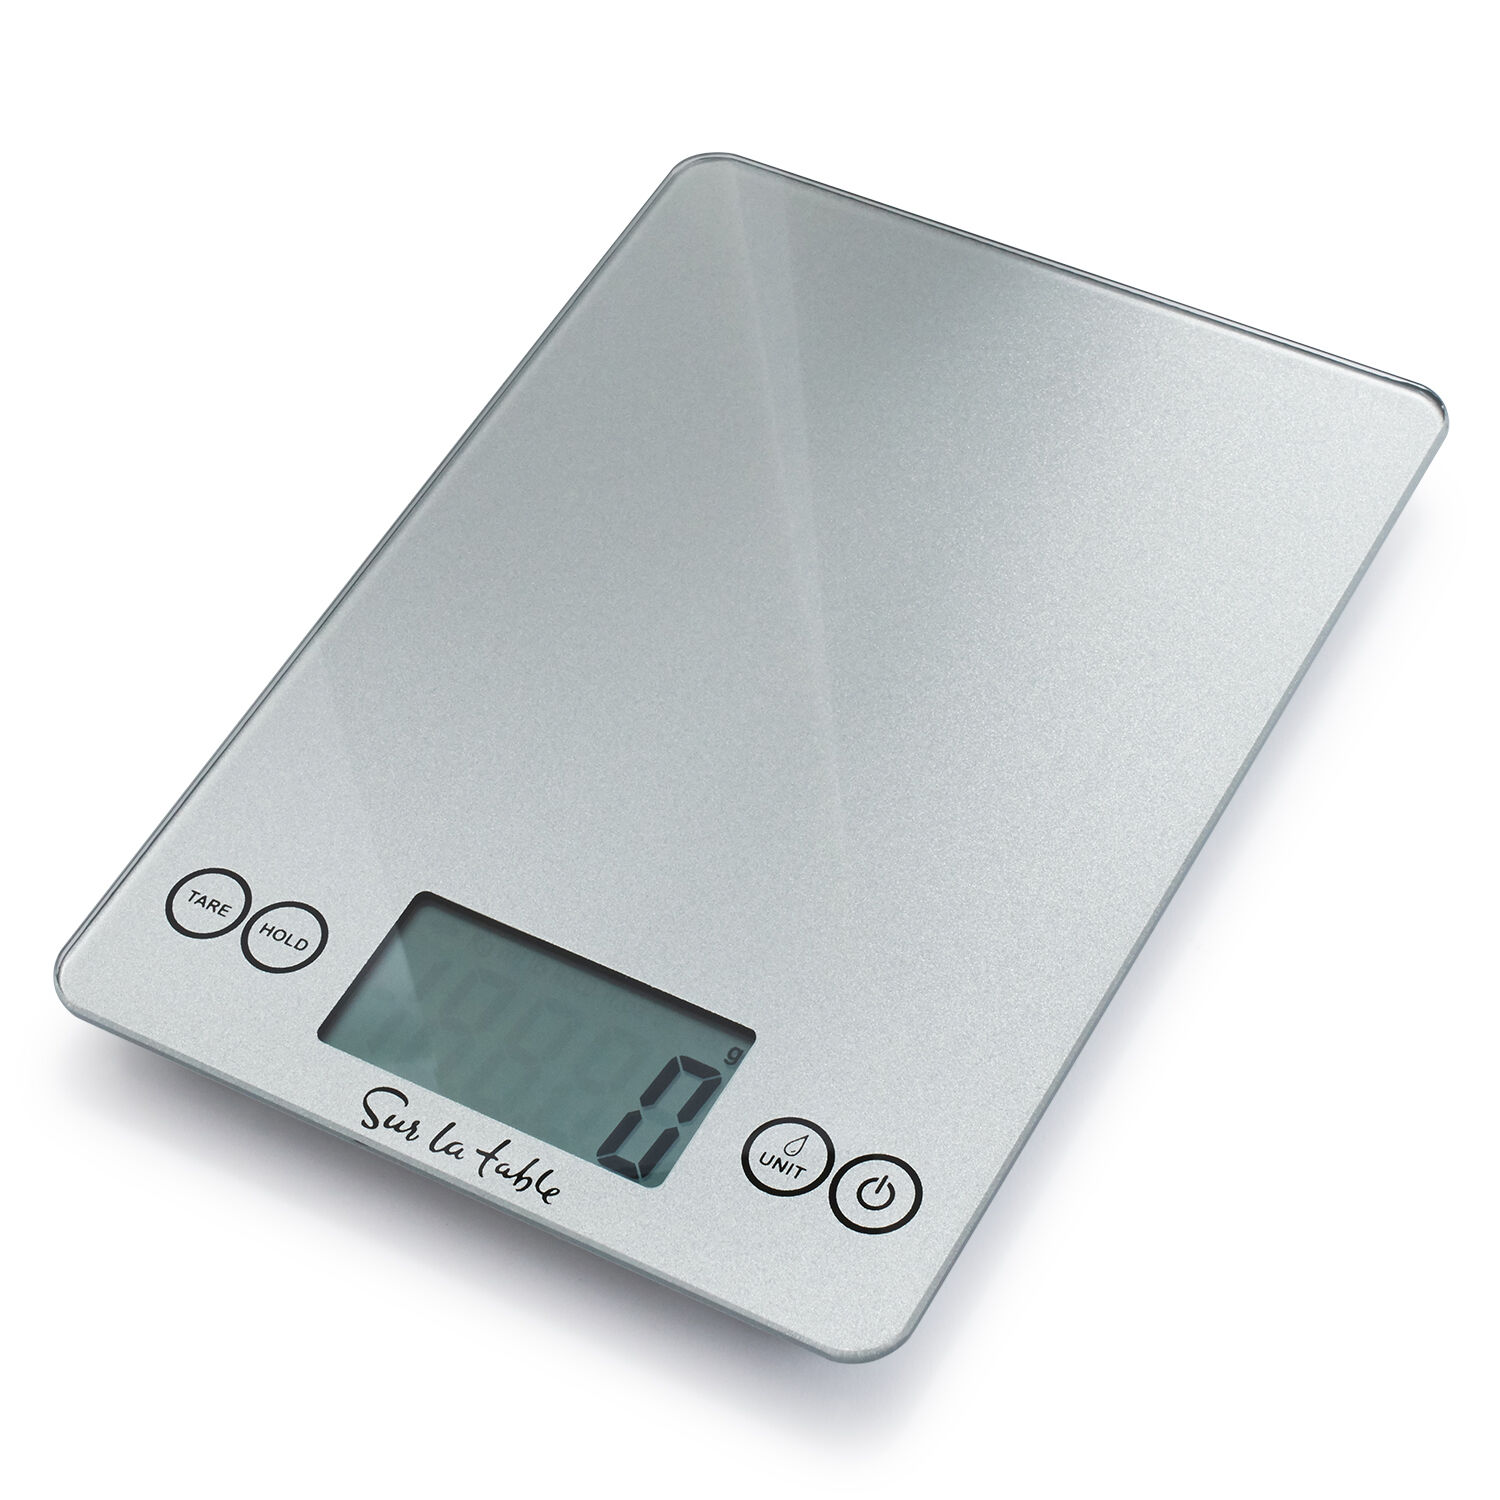 Digital Kitchen Food Scale 15lb White measures both Grams and Ounces